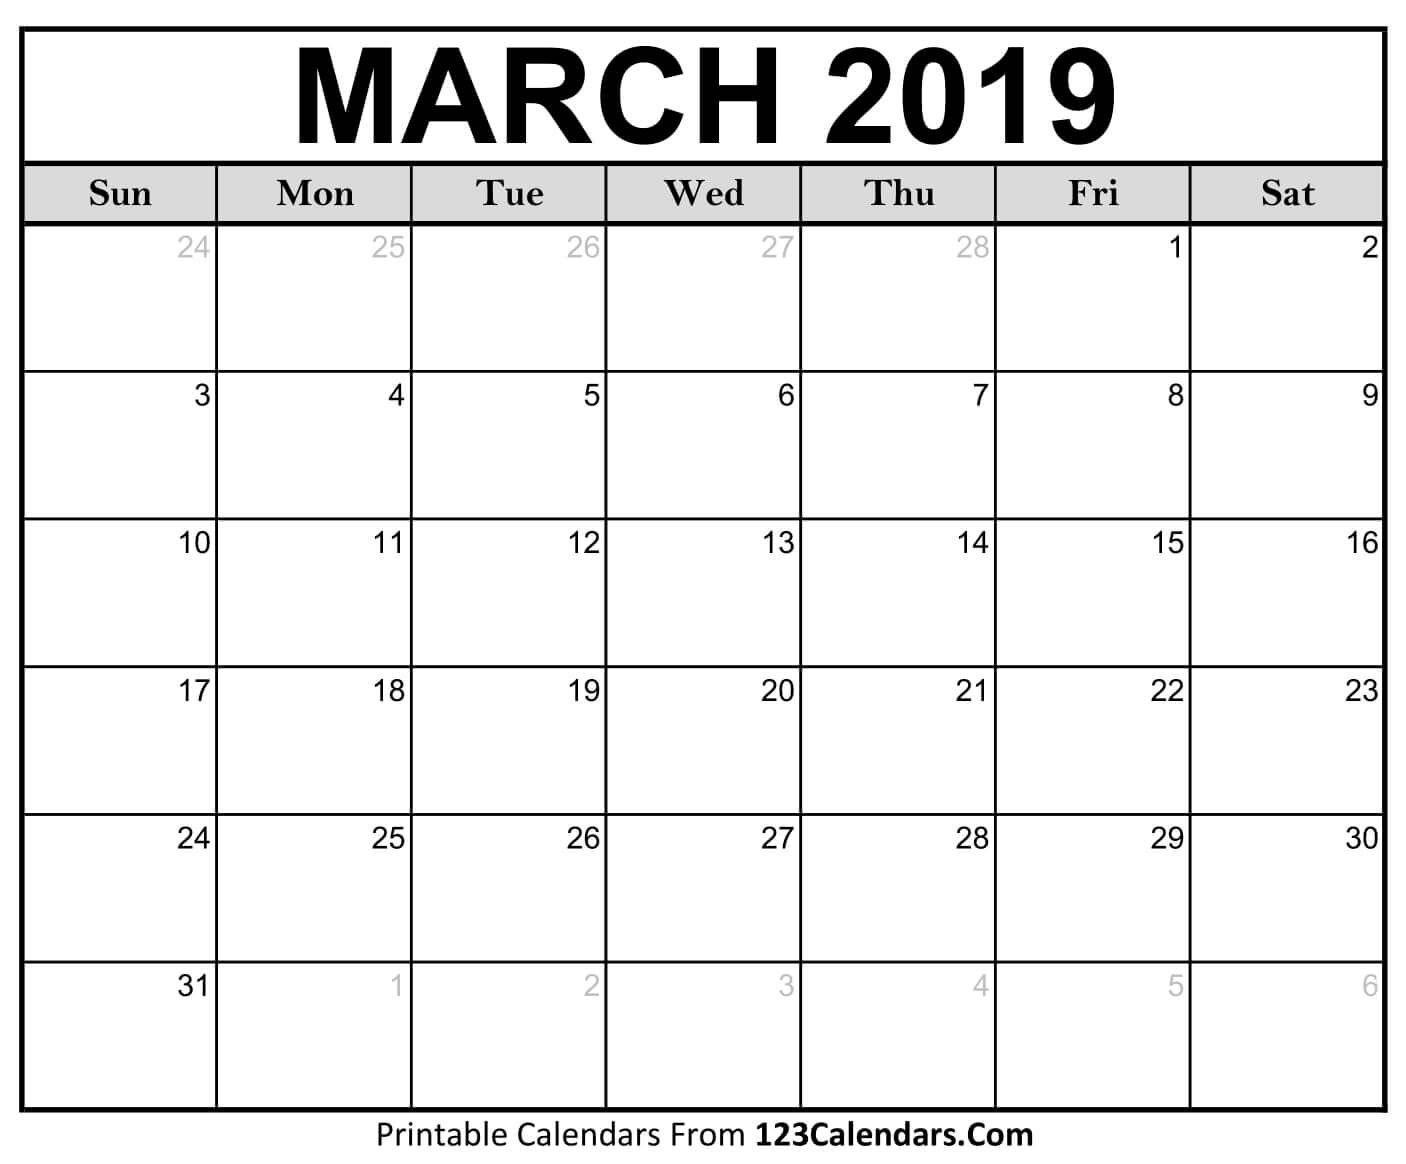 Printable March 2019 Calendar Templates - 123Calendars Calendar Of 2019 March